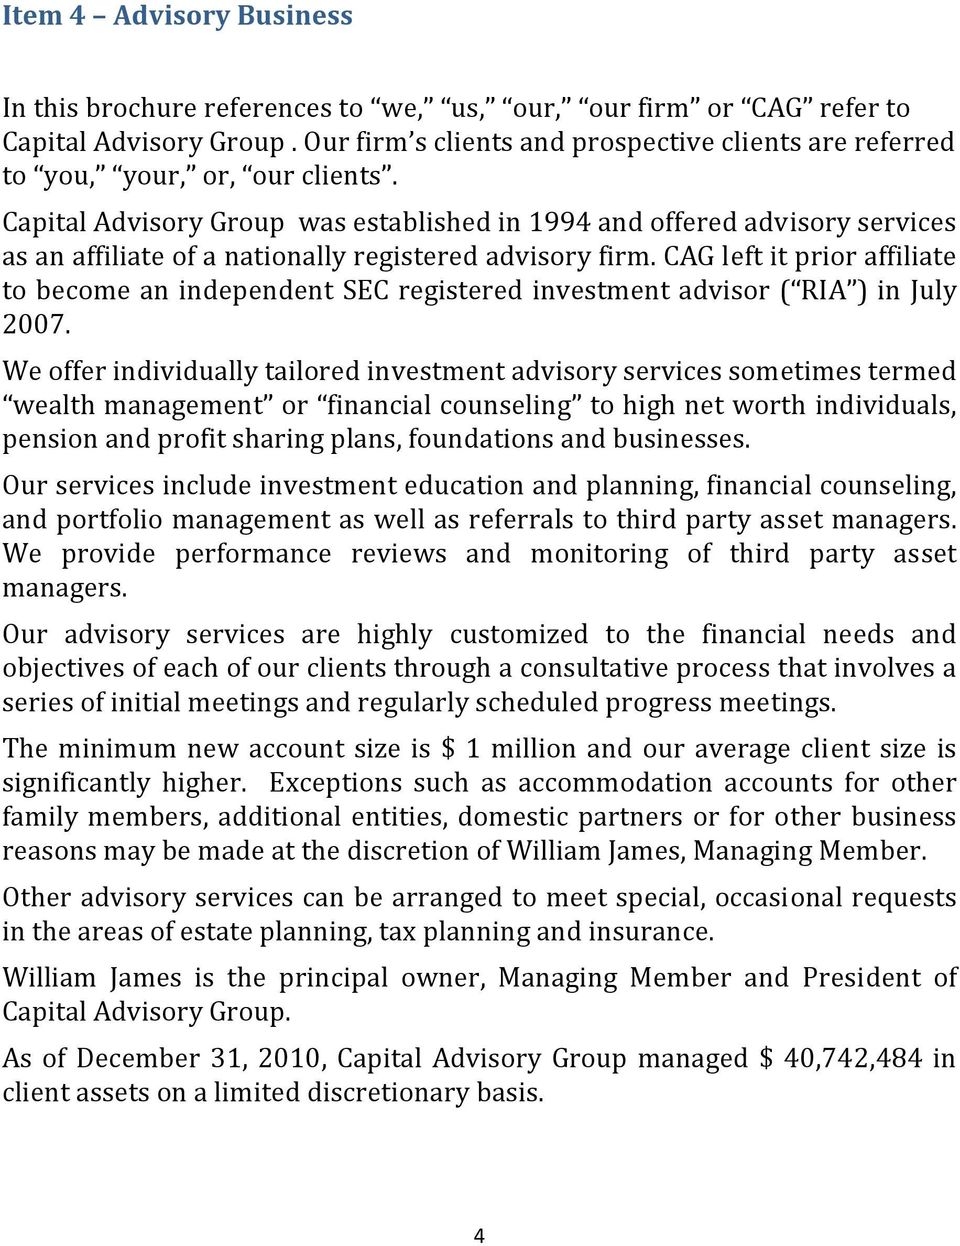 Capital Advisory Group was established in 1994 and offered advisory services as an affiliate of a nationally registered advisory firm.